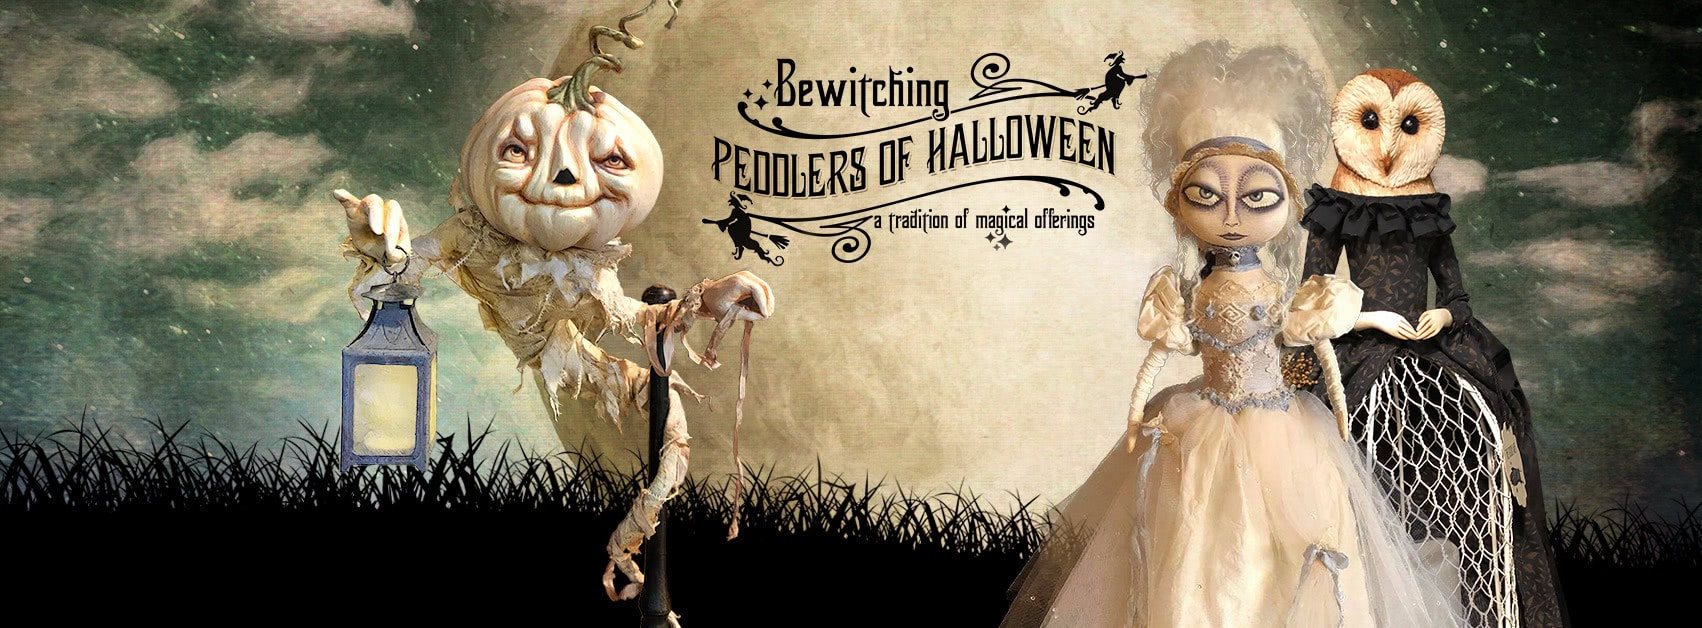 Bewitching Peddlers Of Halloween 2020 Bewitching Peddlers 2020